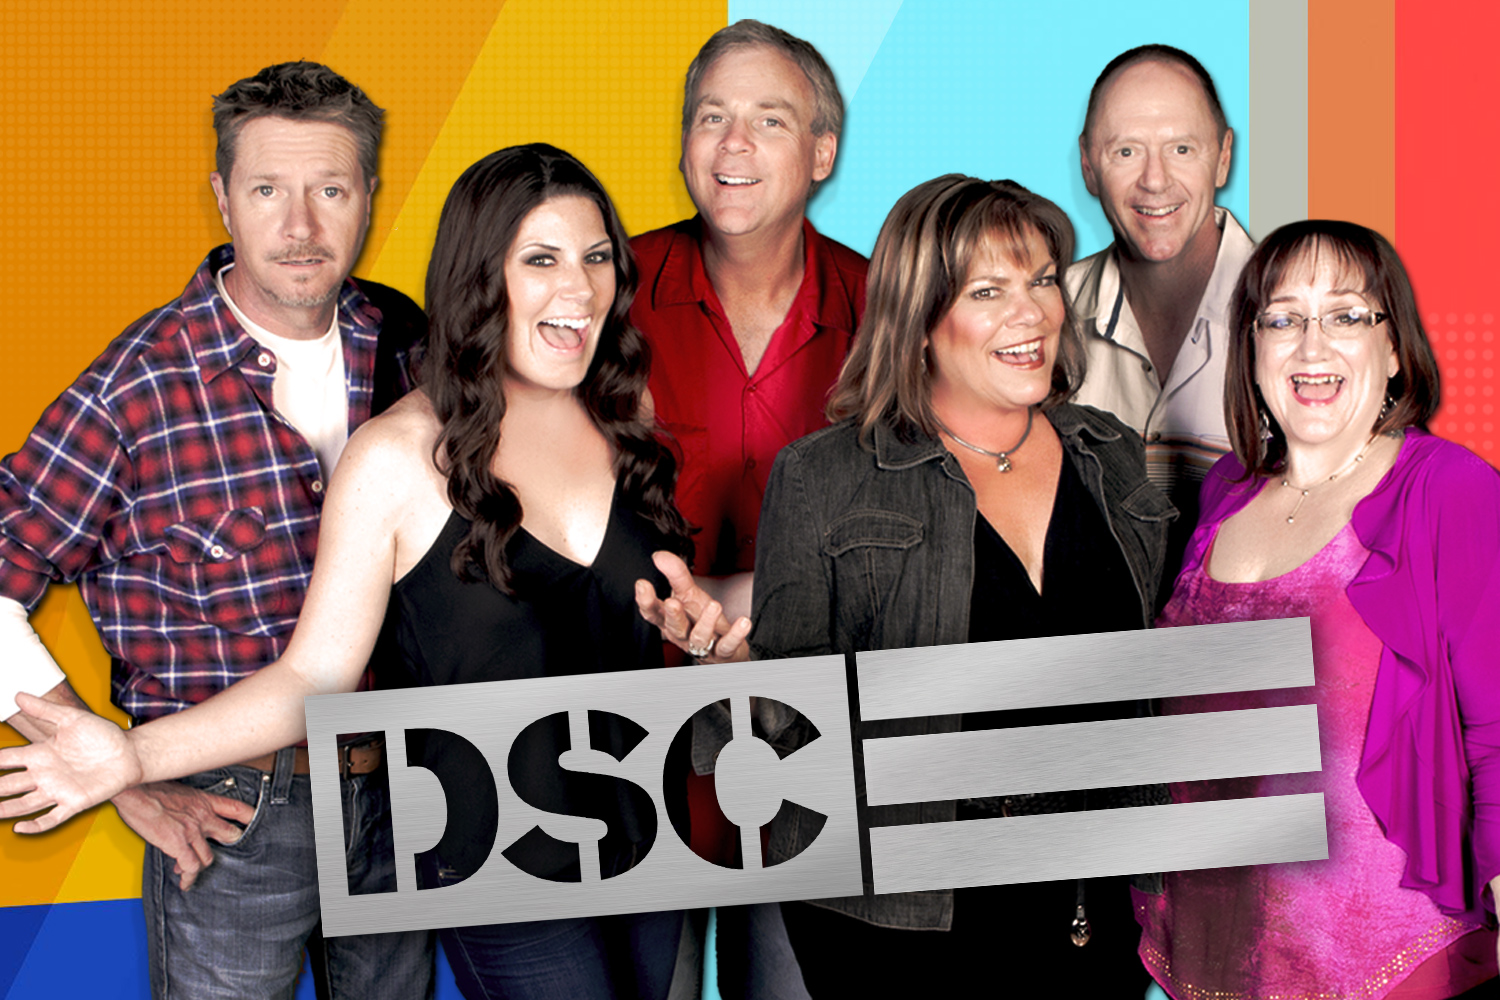 THE DSC MORNING SHOW